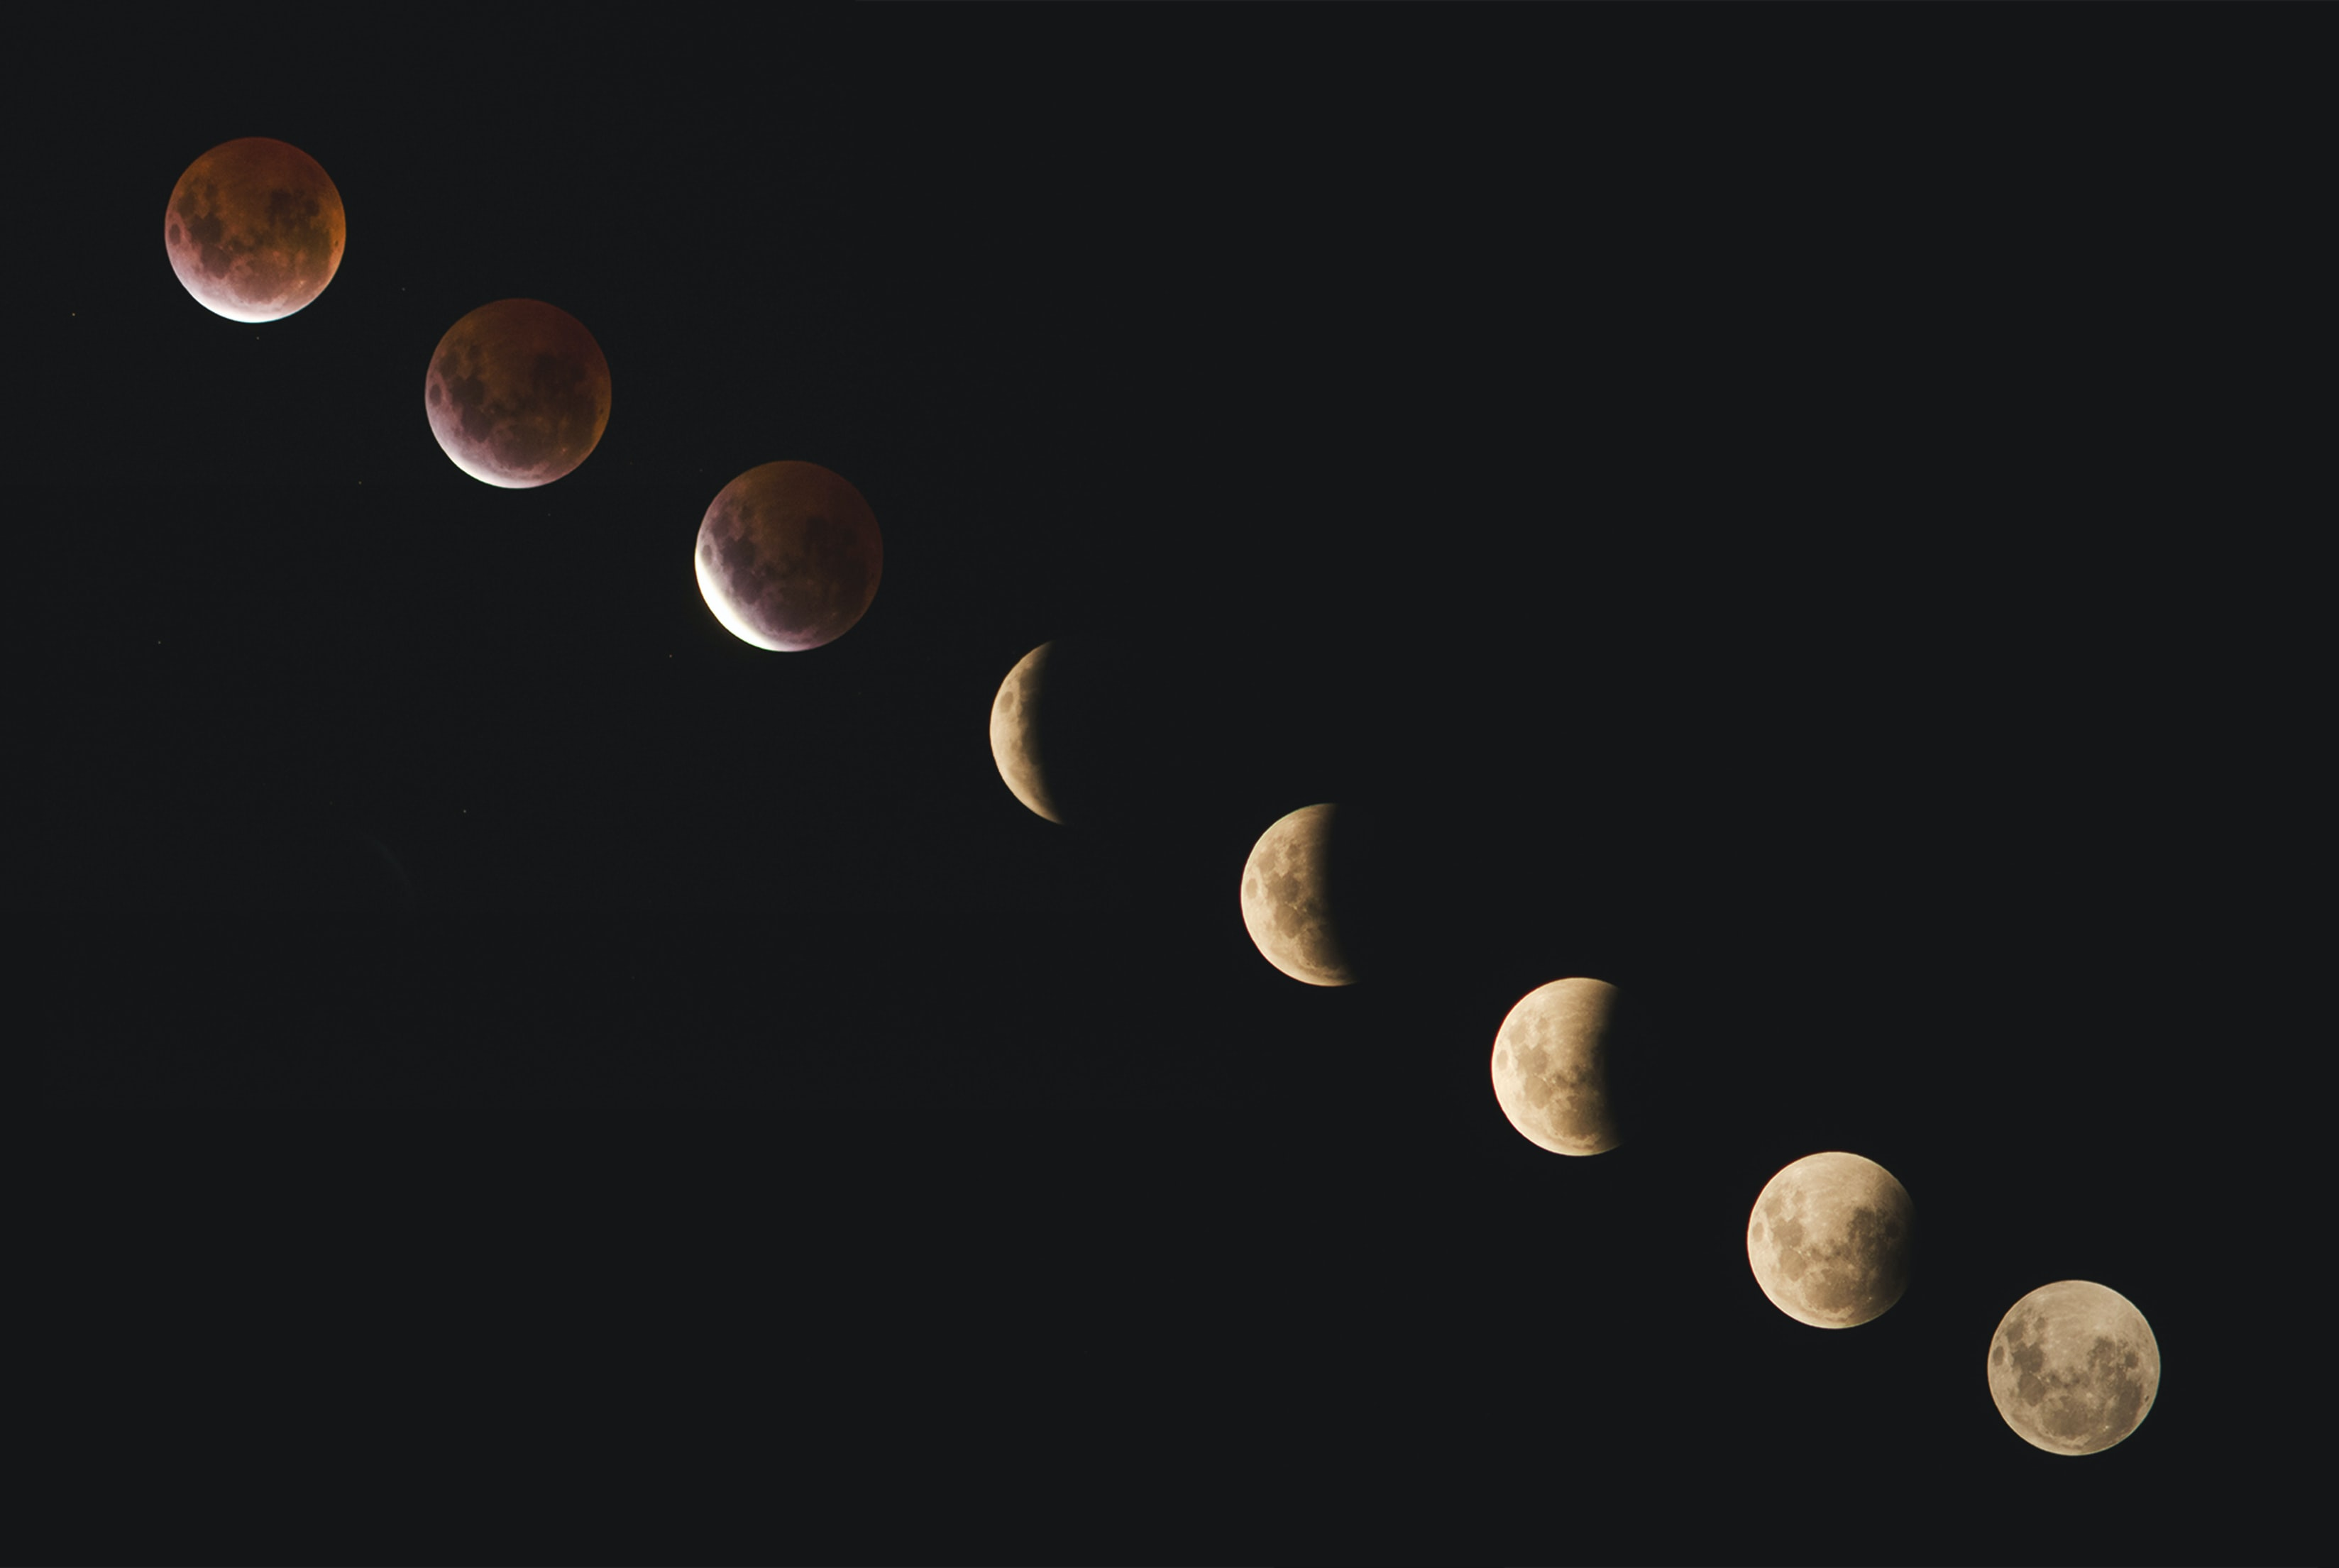 Long-exposure photograph of the phases of a lunar eclipse